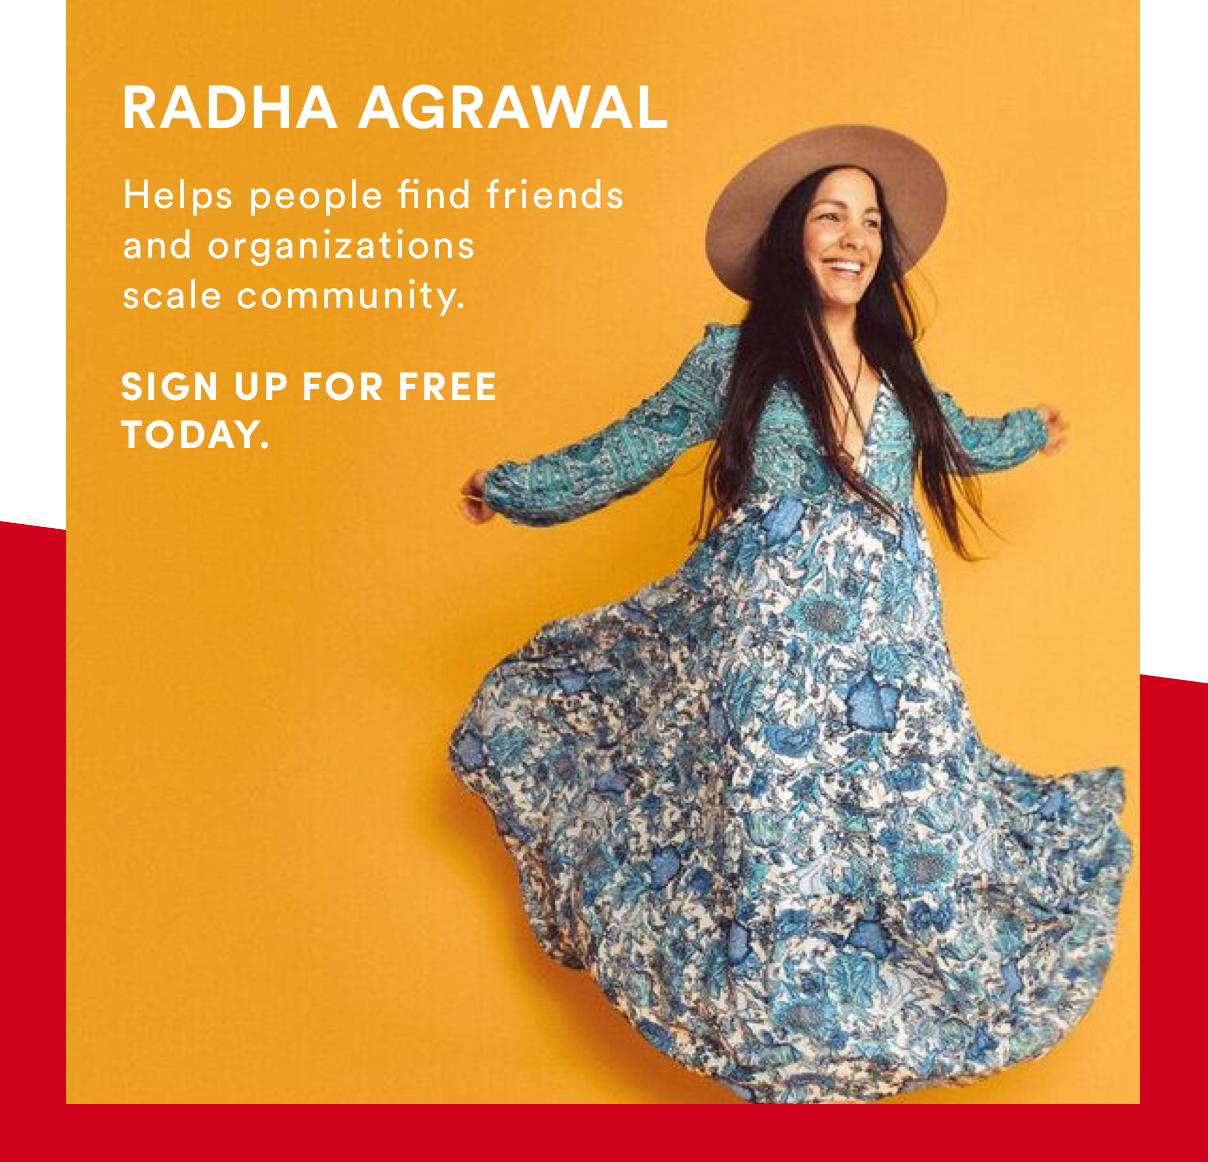 Radha Agrawal helps people find friends and organizations scale community. SIGN UP FOR FREE TODAY.